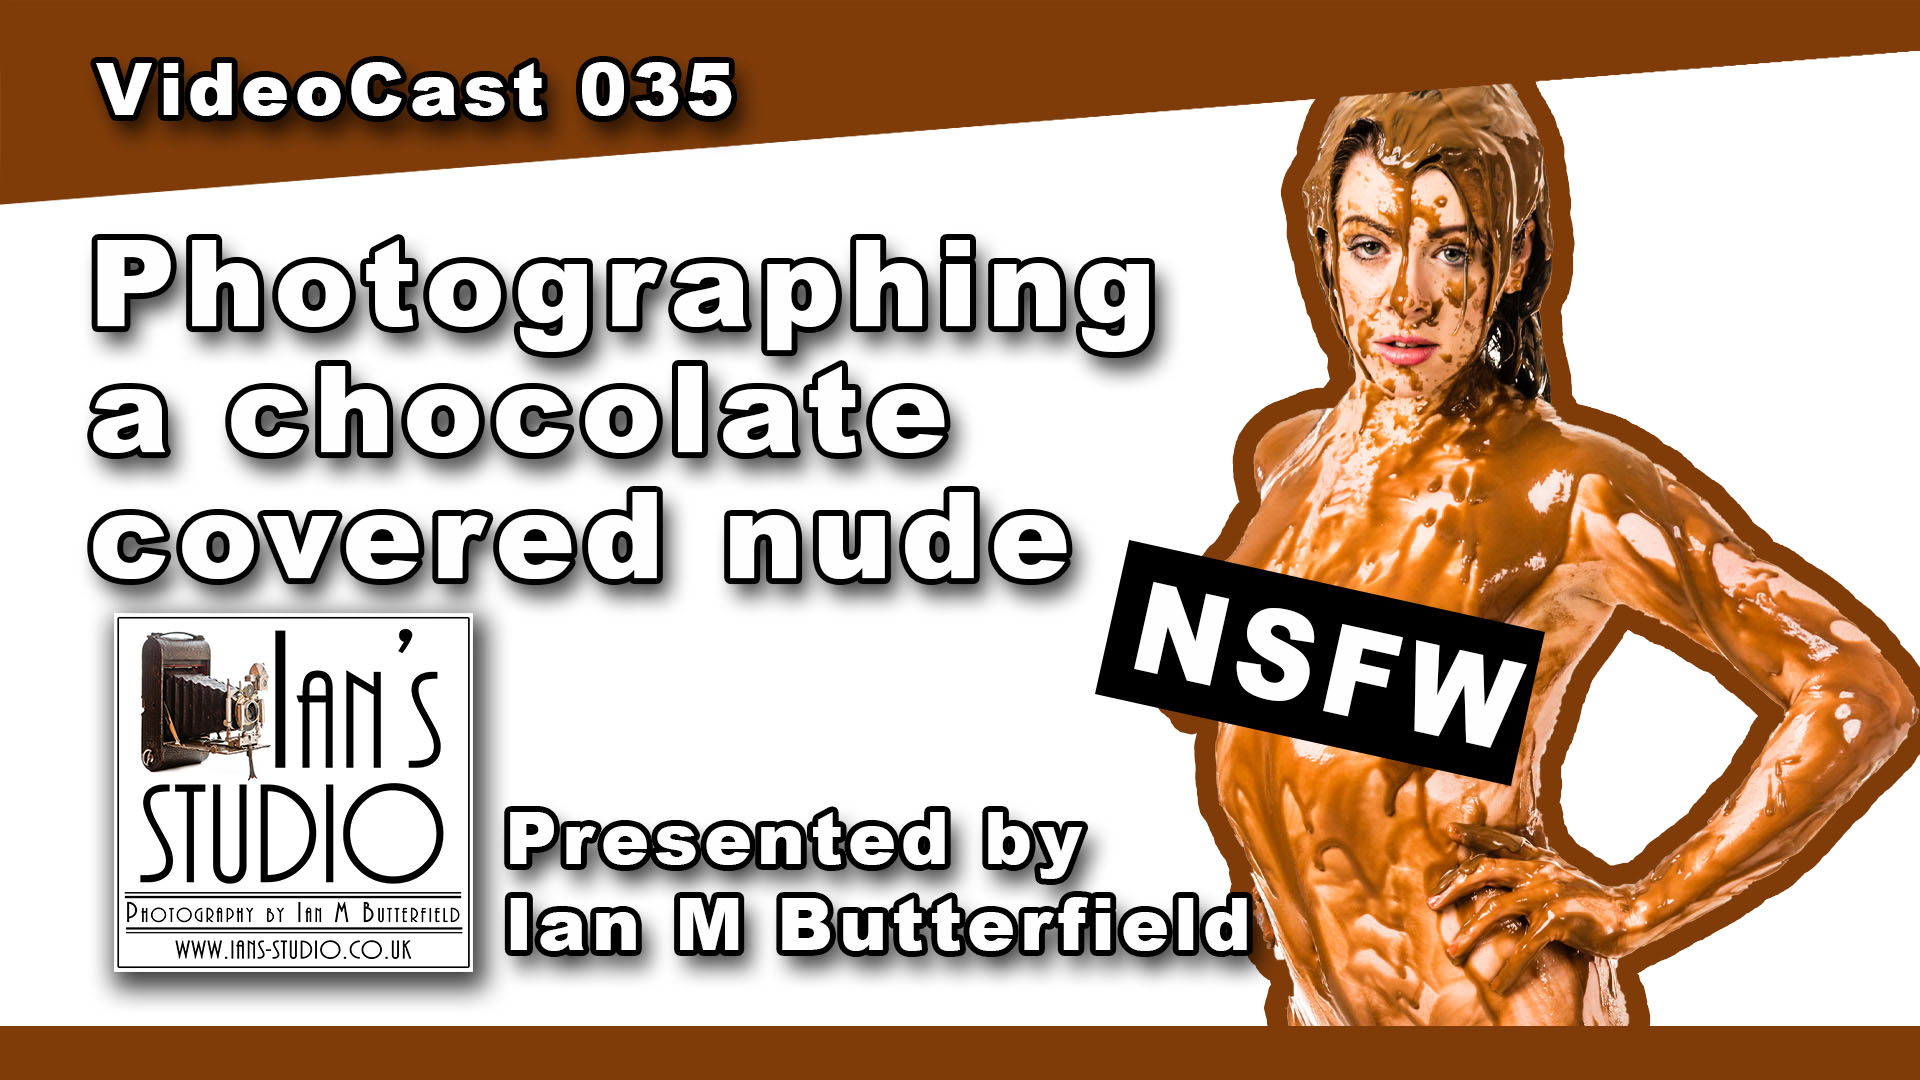 11 MAR 2020 VIDEOCAST 035: How create a chocotate covered nude